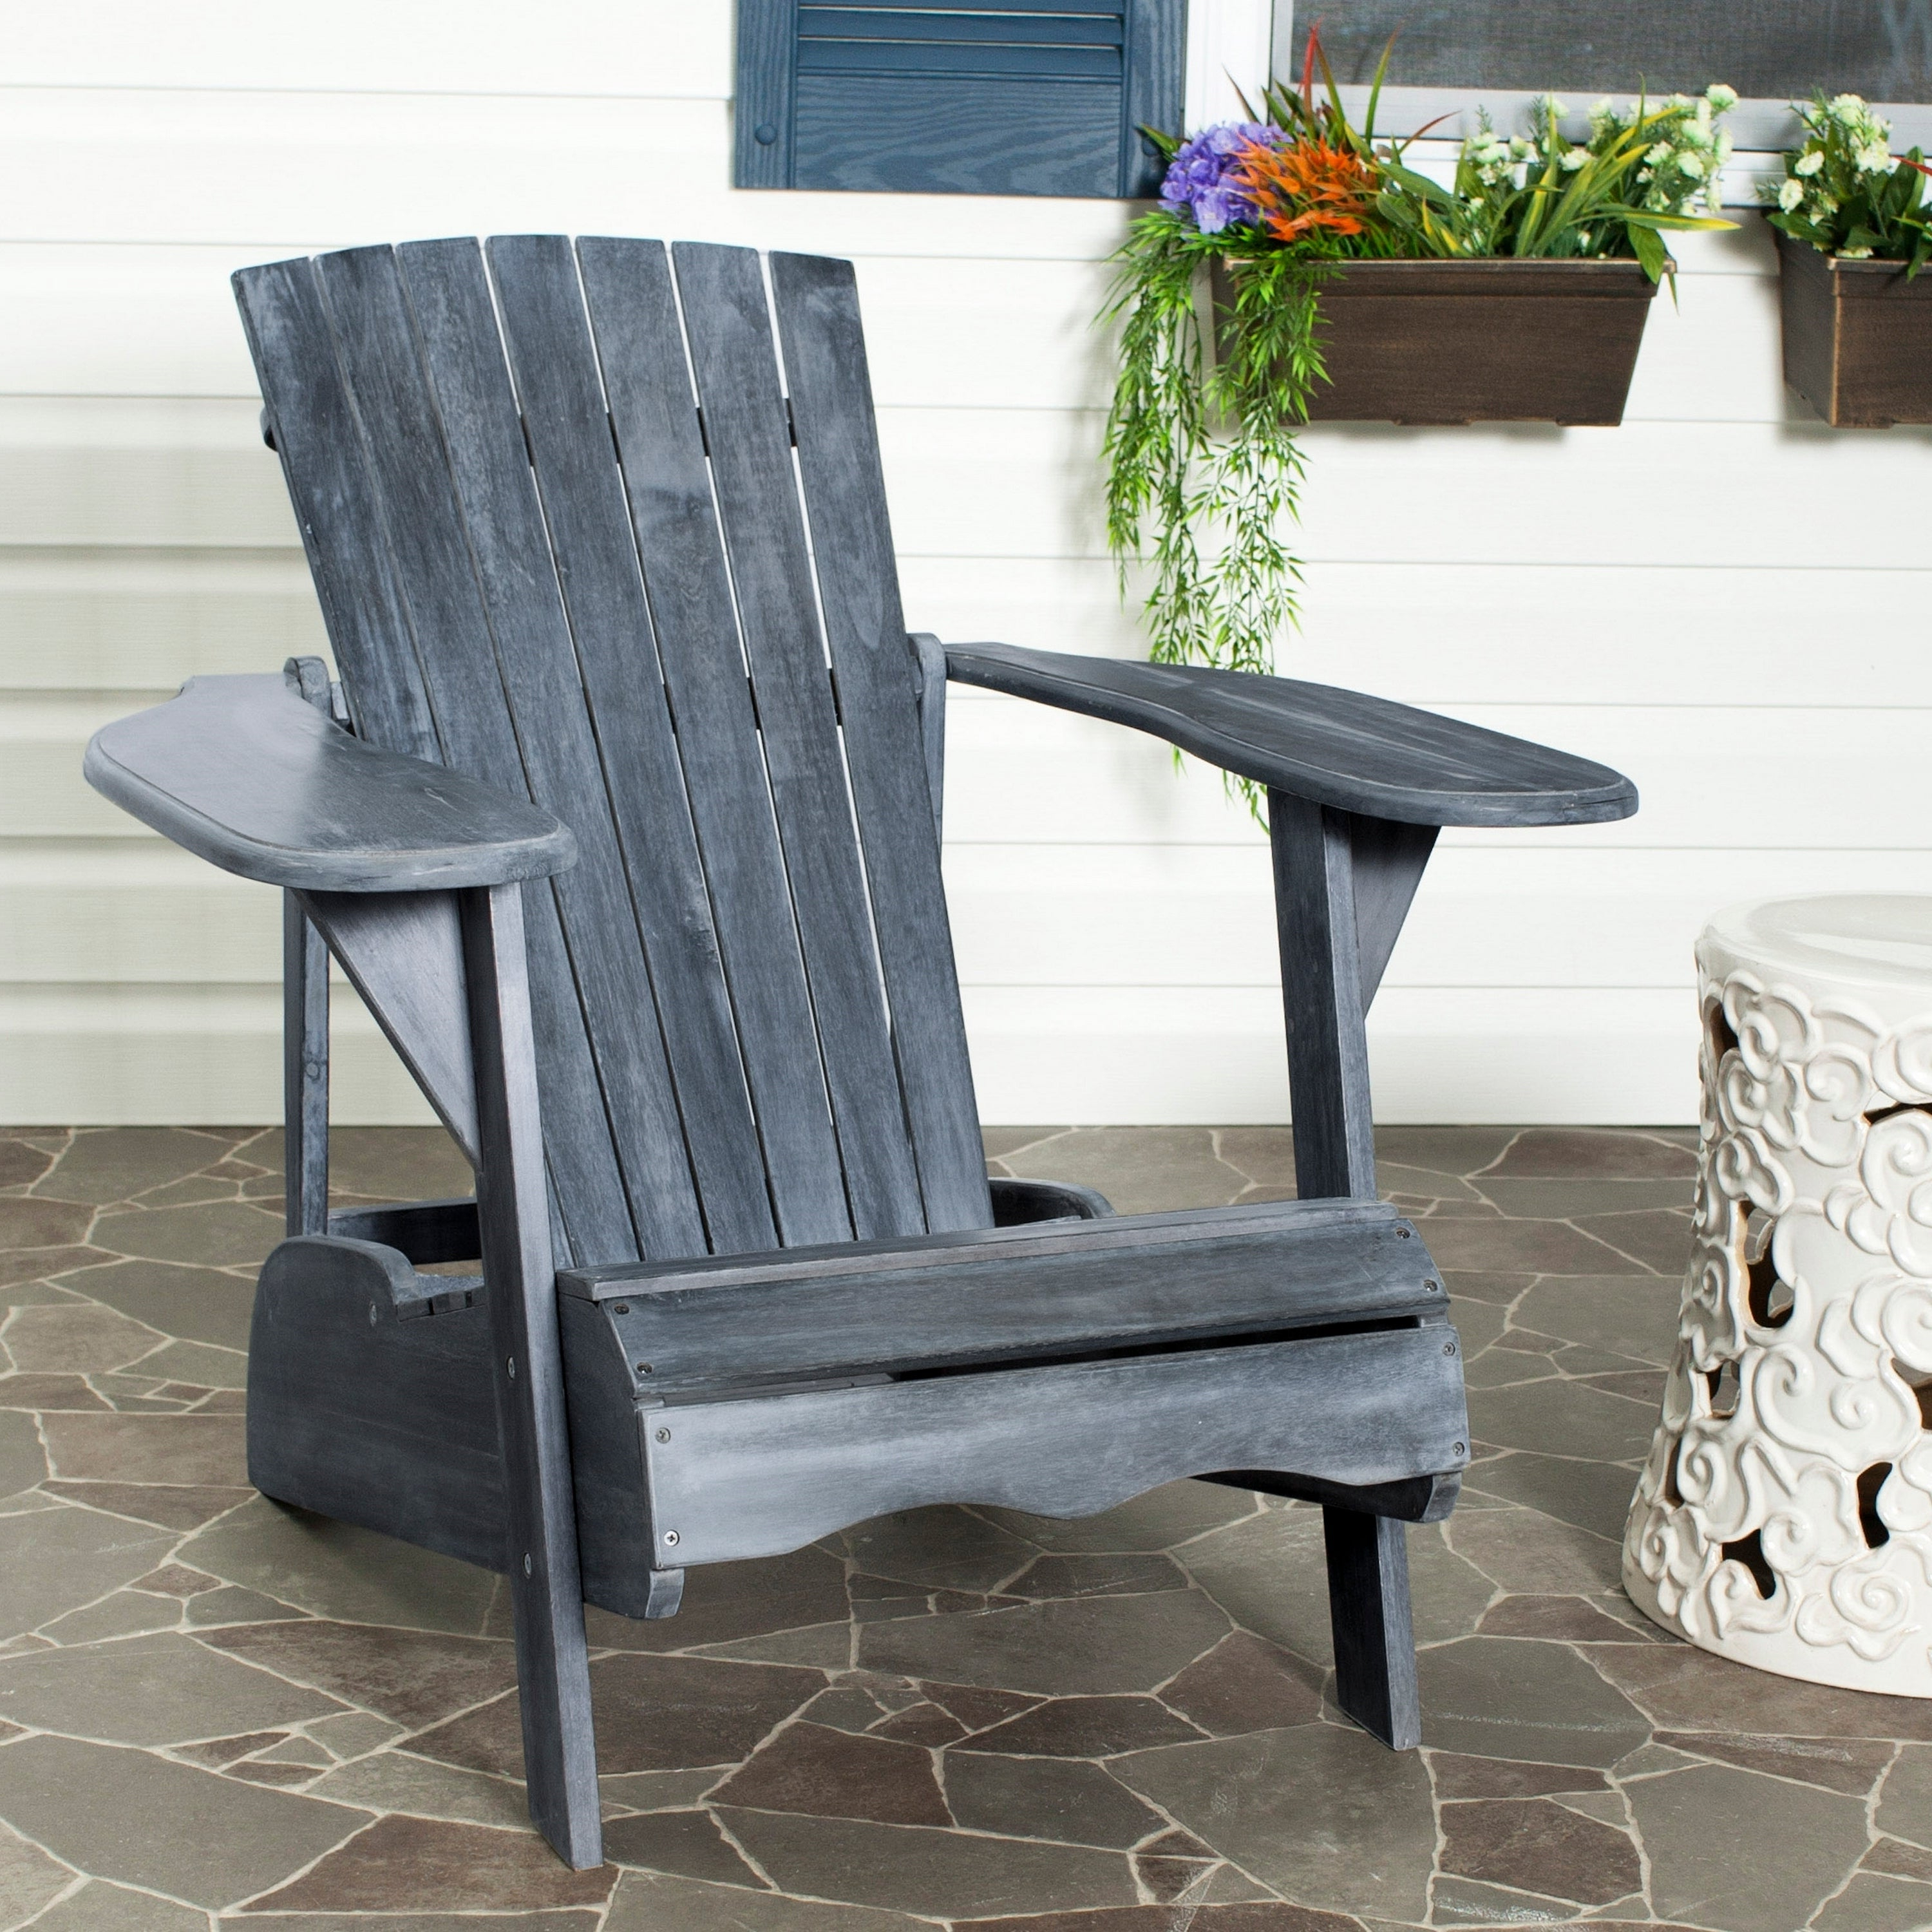 Find Great Outdoor Seating (View 16 of 25)